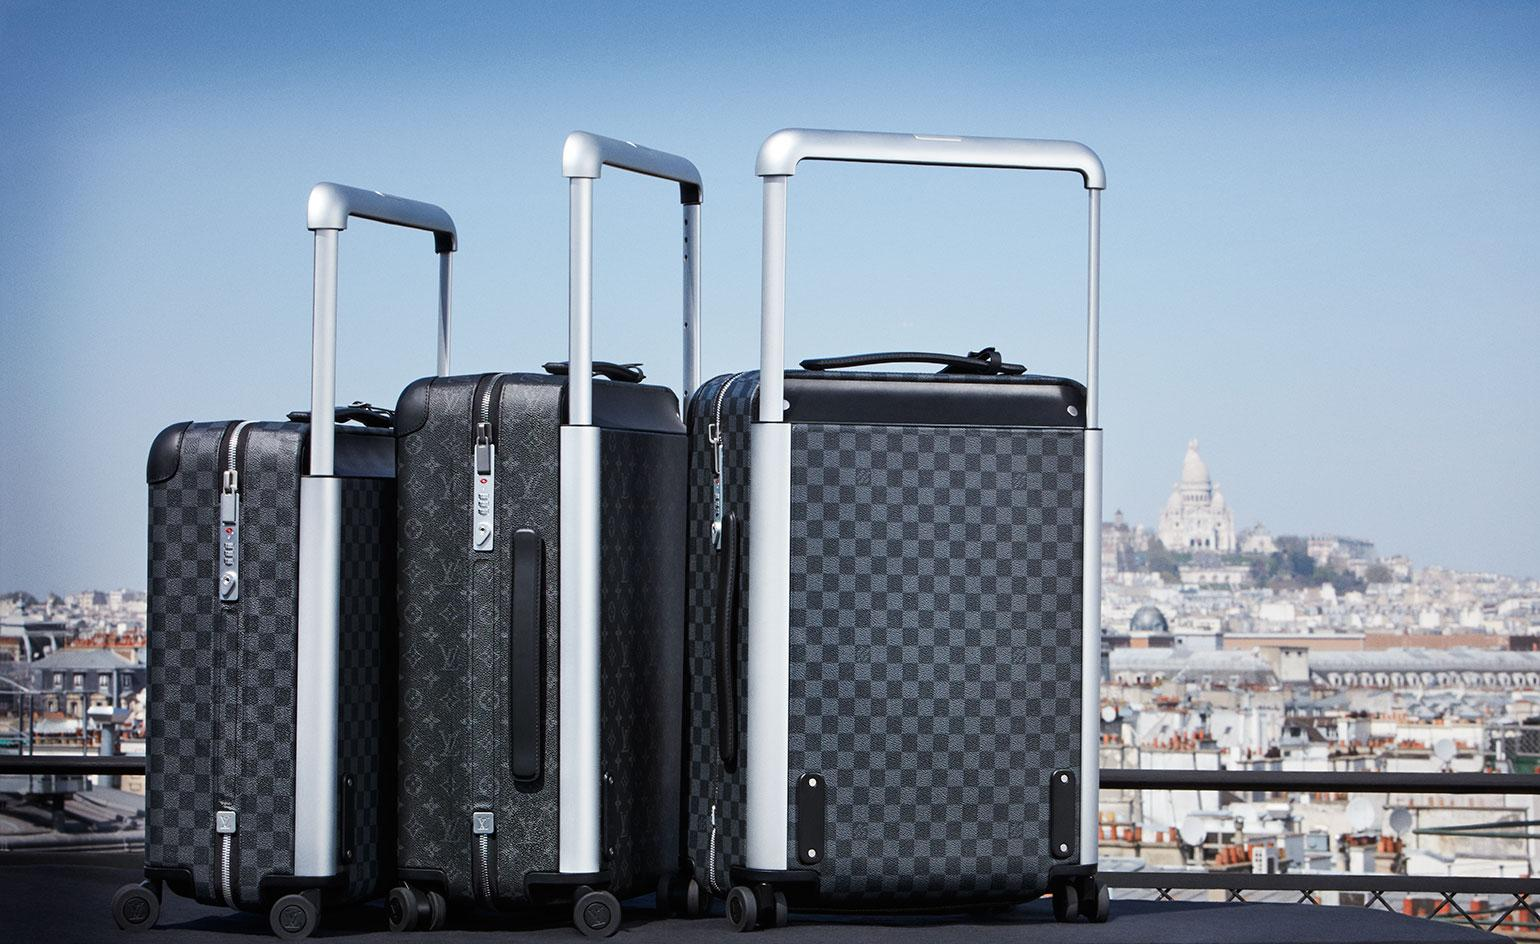 Rolling out: Marc Newson reinvents Louis Vuitton's trunks for the 21st century